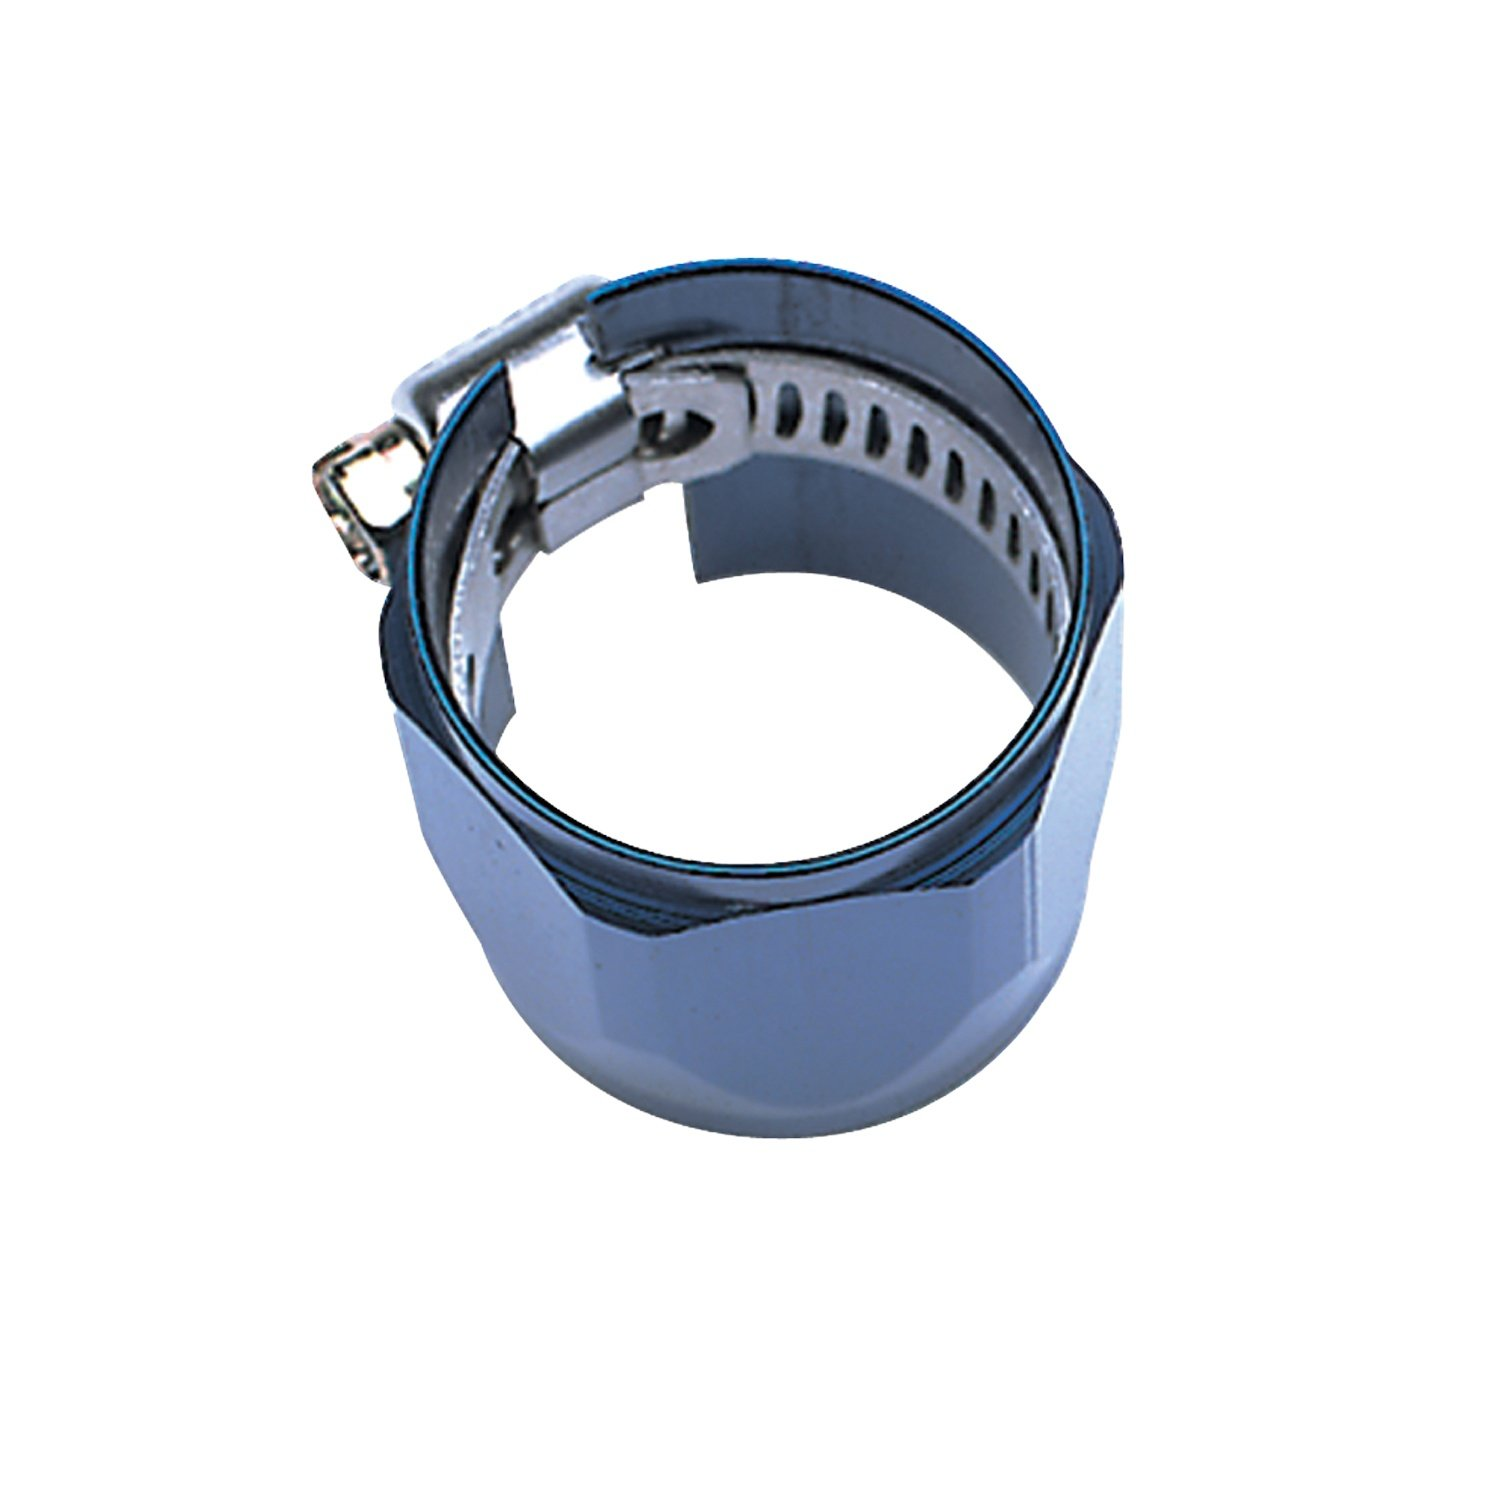 Edelbrock/Russell 623260 Blue Anodized Aluminum -6AN Tube Seal Fuel Hose End RUS-623260